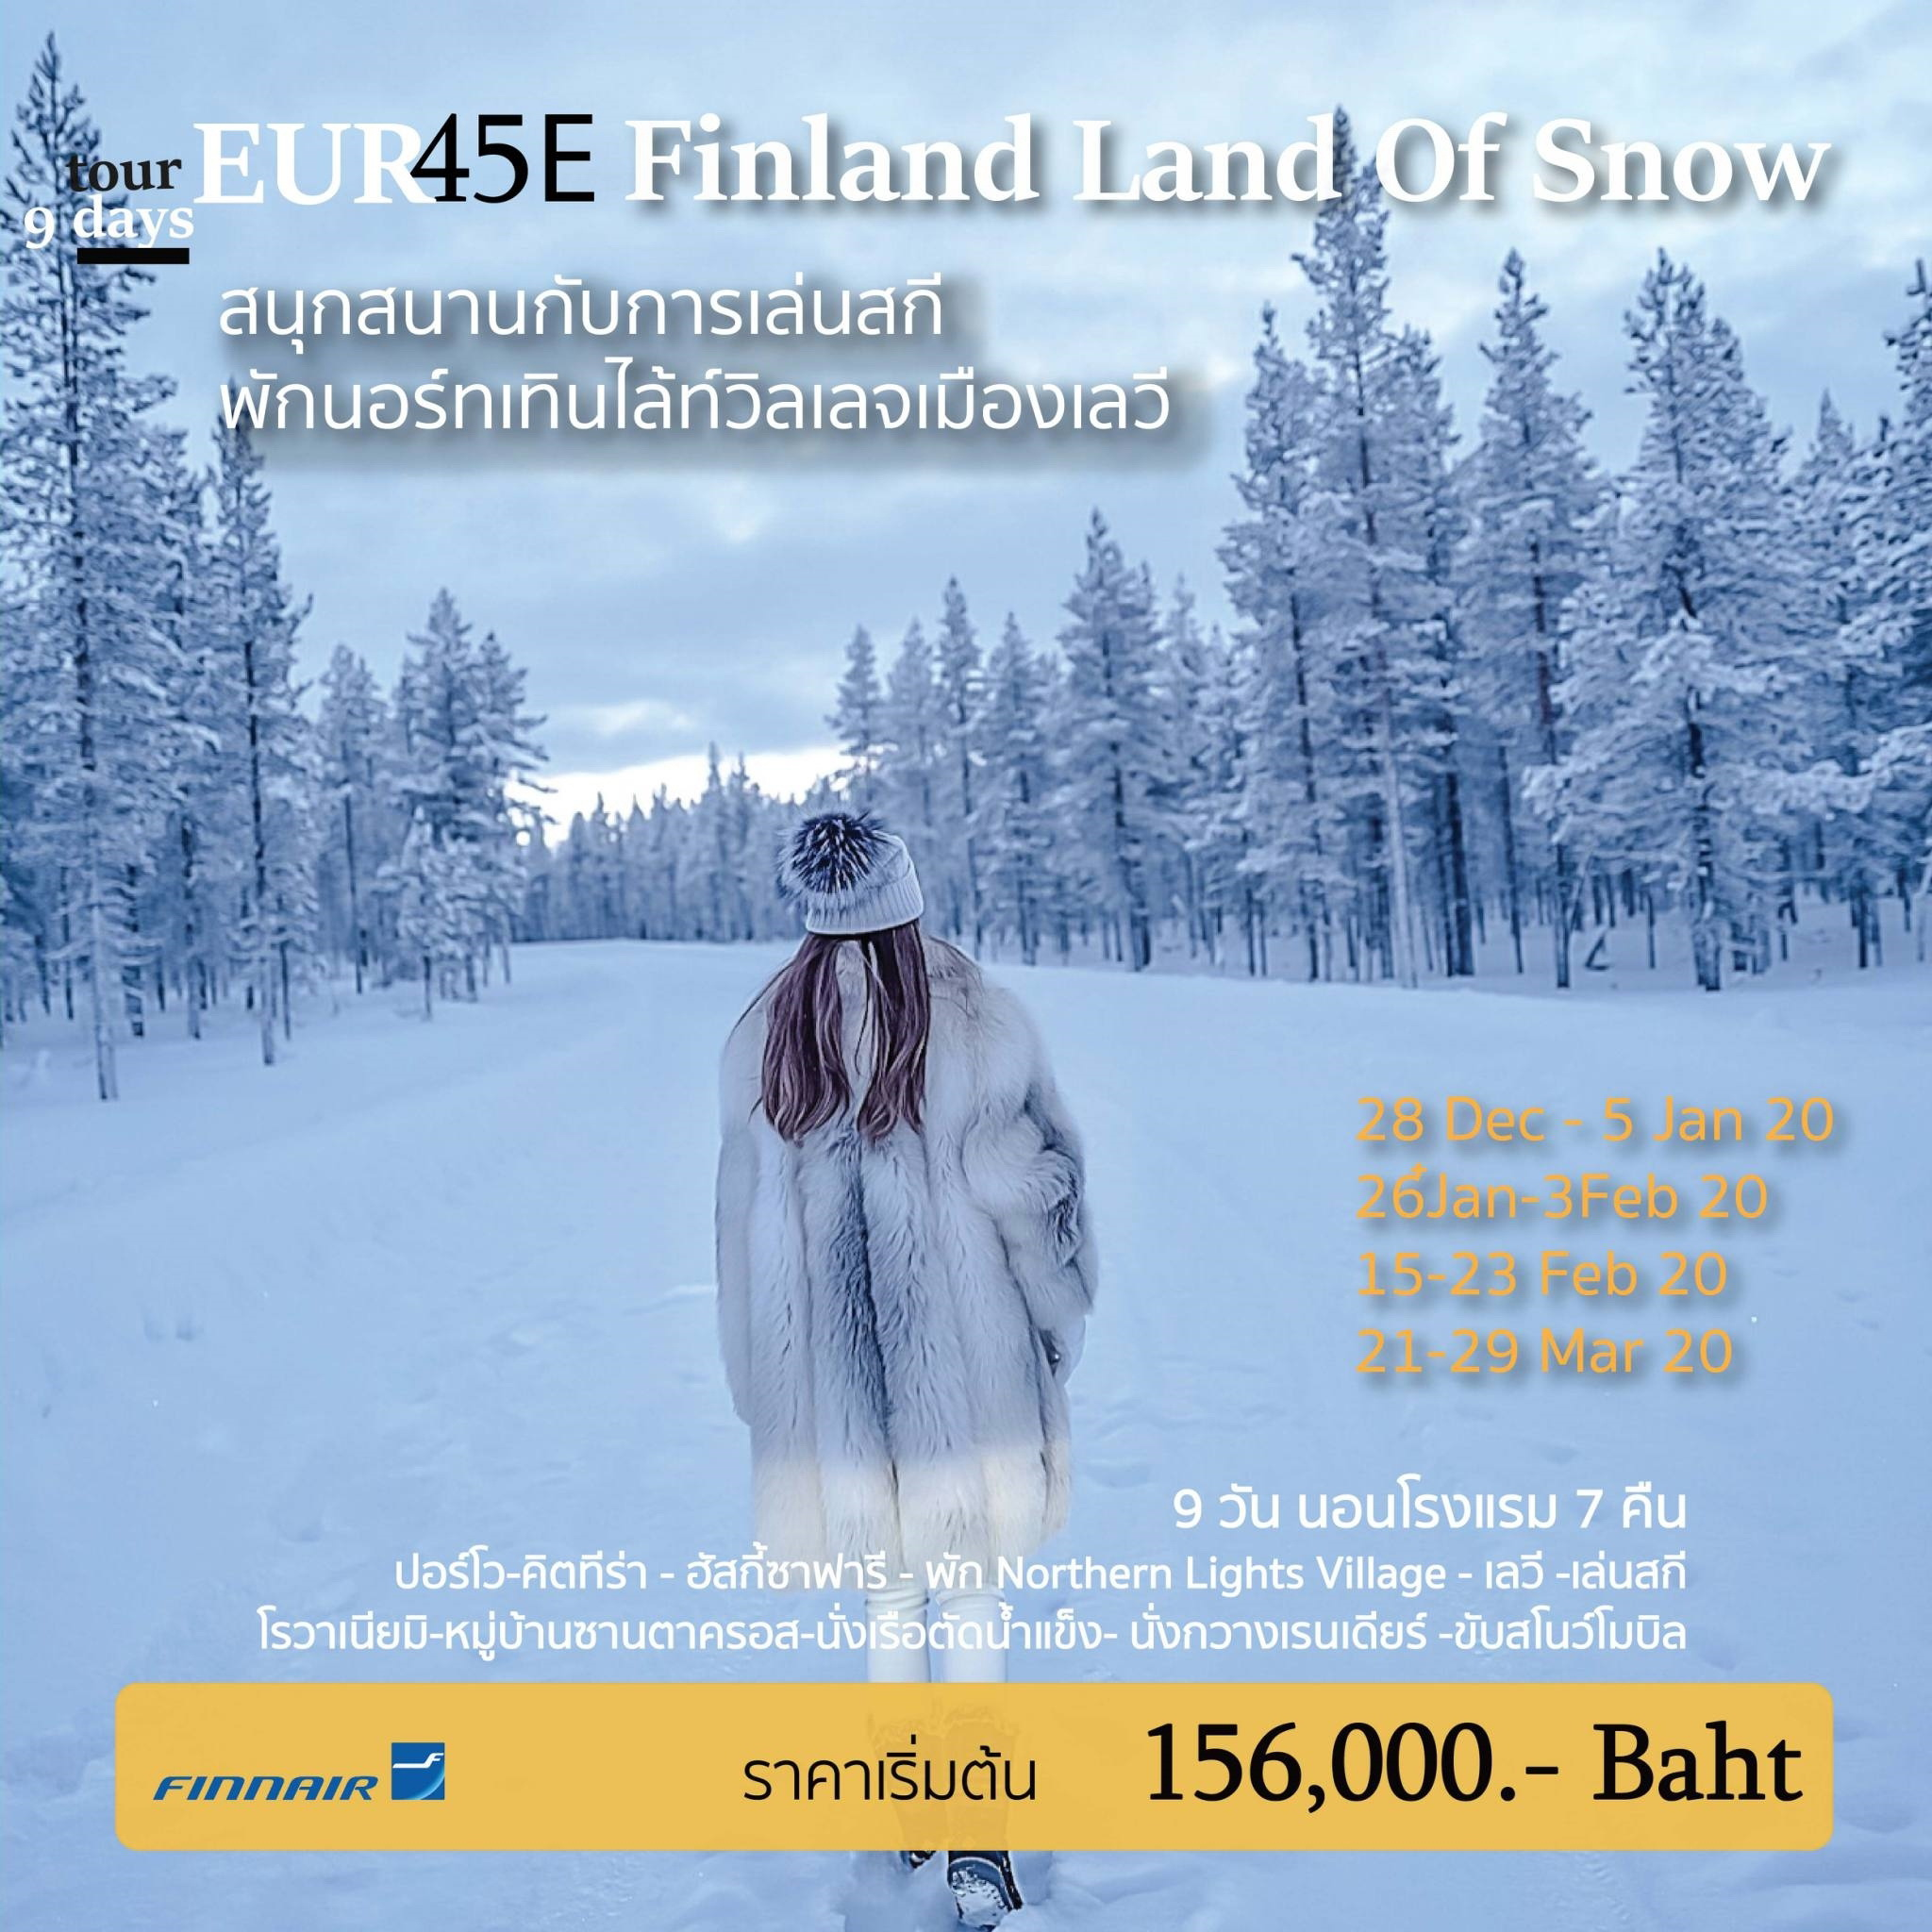 EUR_45E Finland land of Snow 9 D_AY New Year-Mar 2020